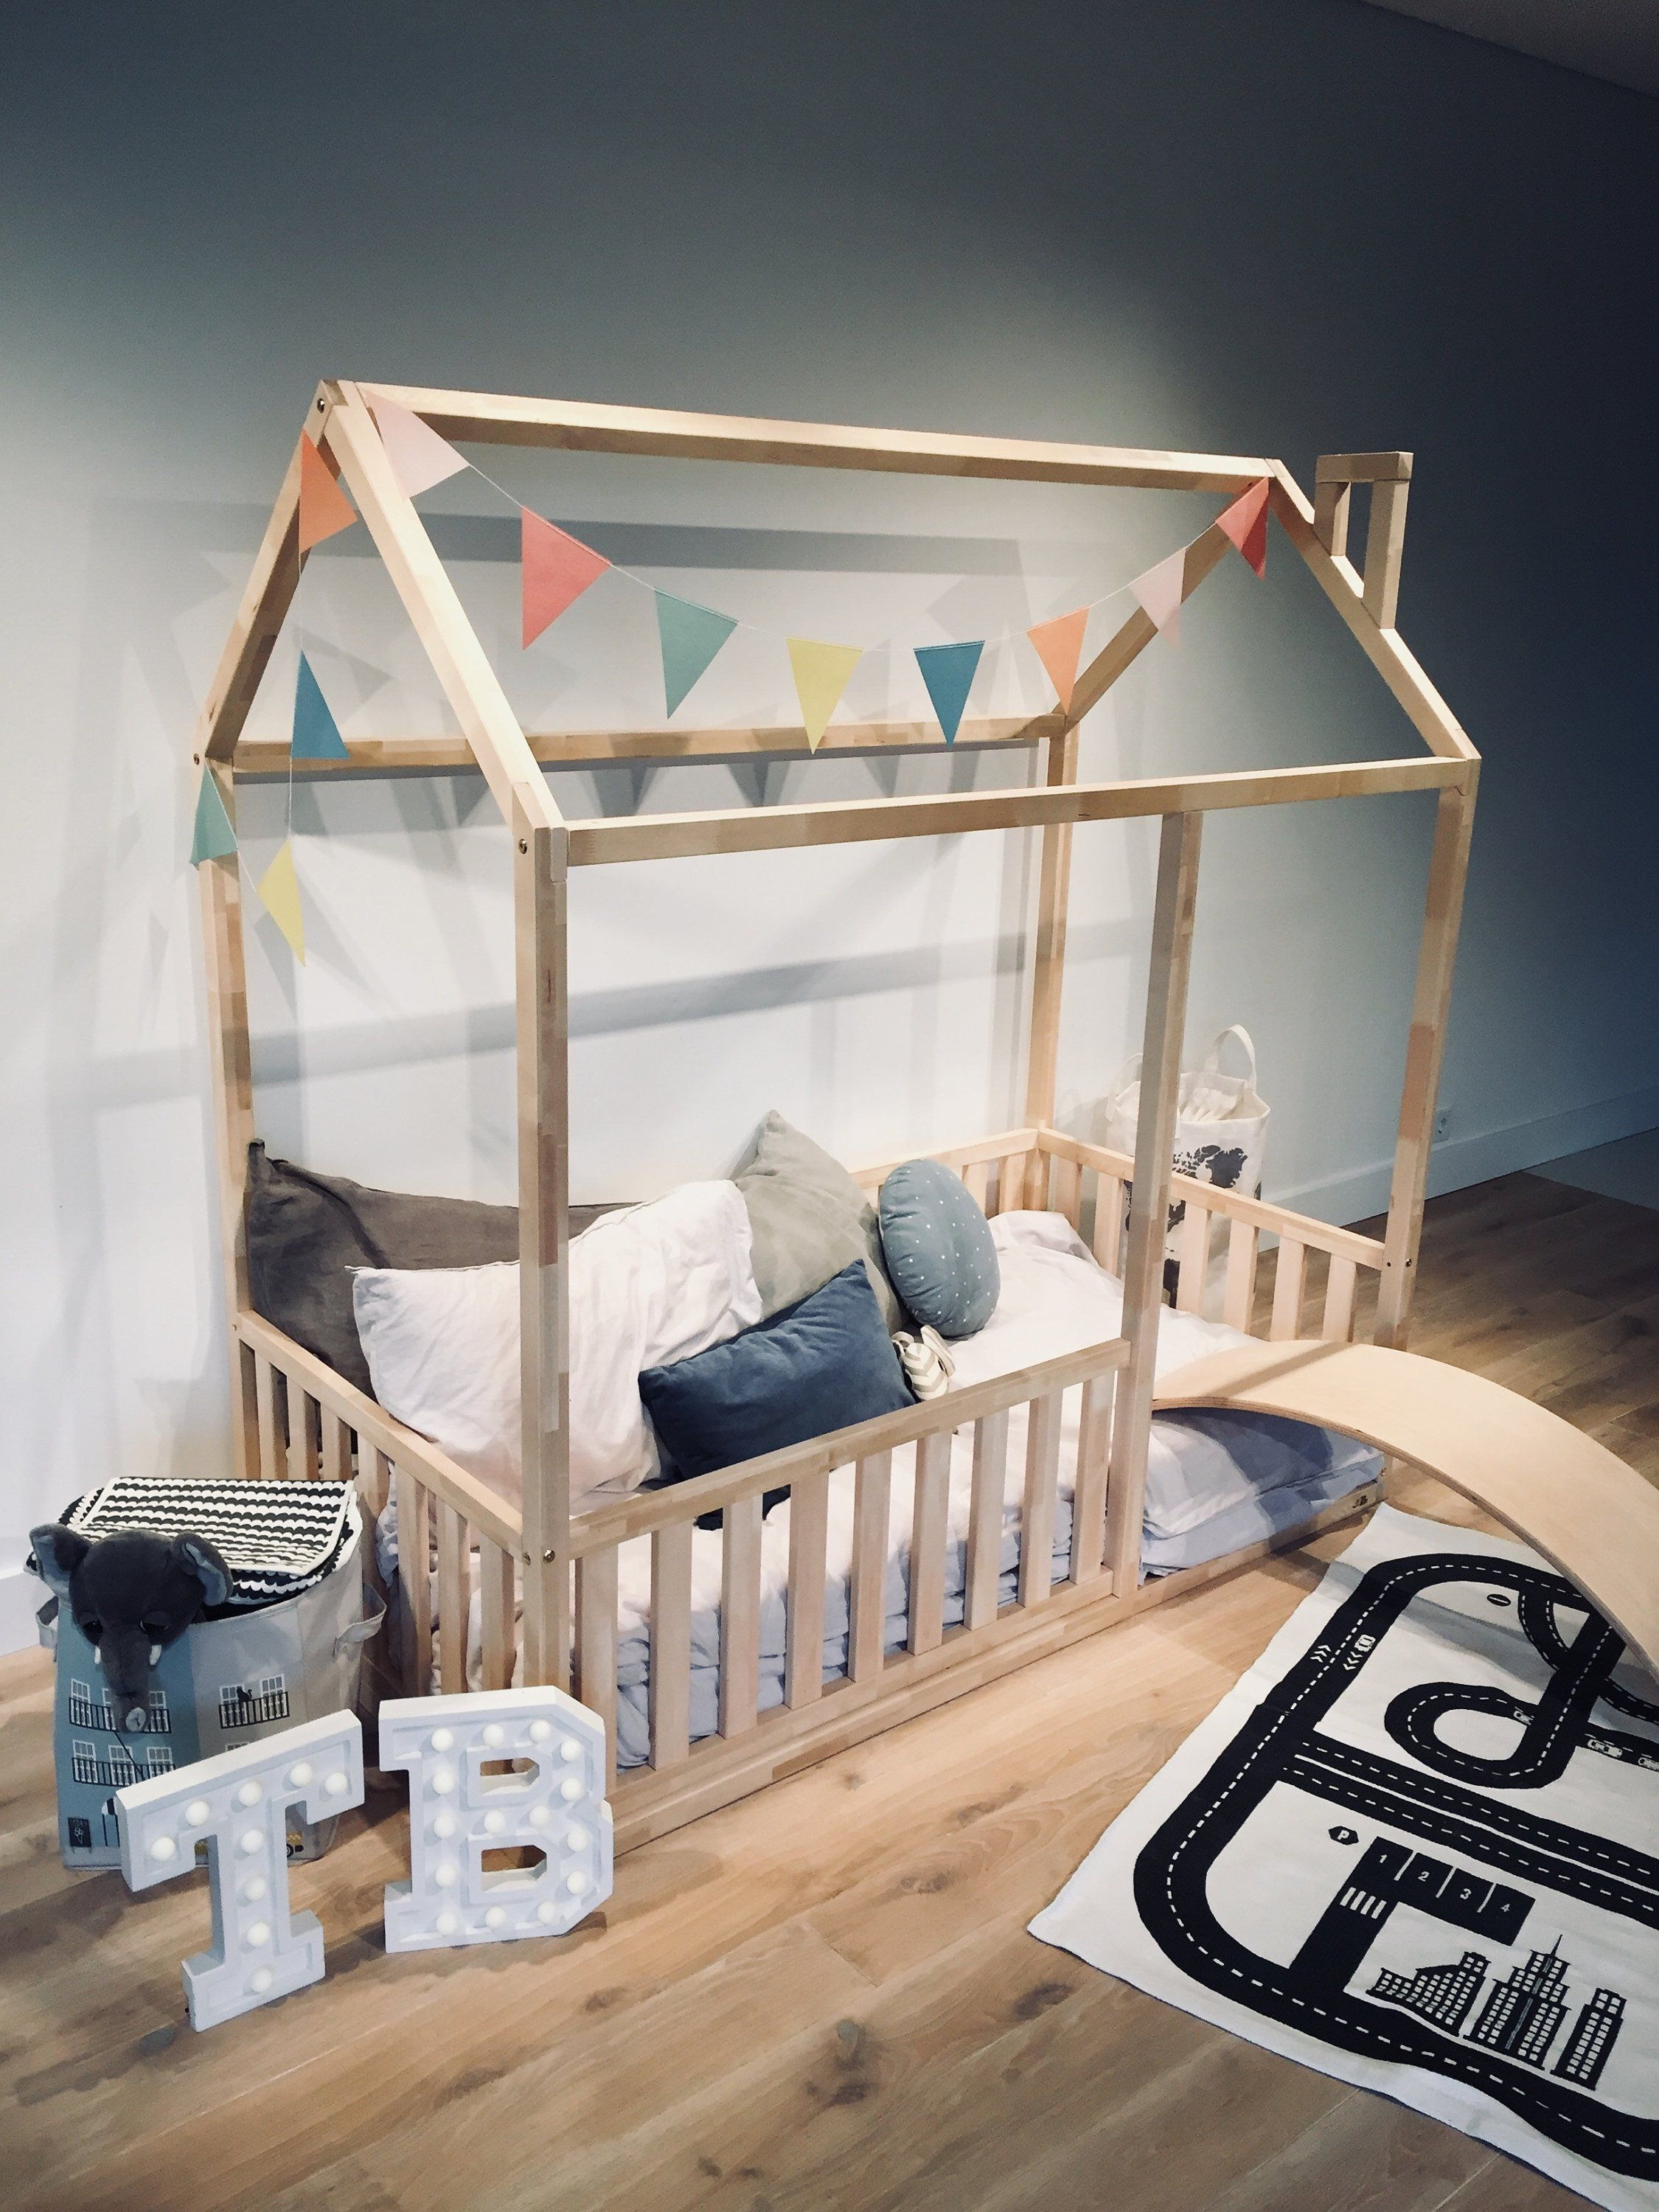 Loft bed with desk south africa  Toddler bed Play house bed frame Children bed Bunk bed Home bed Wood